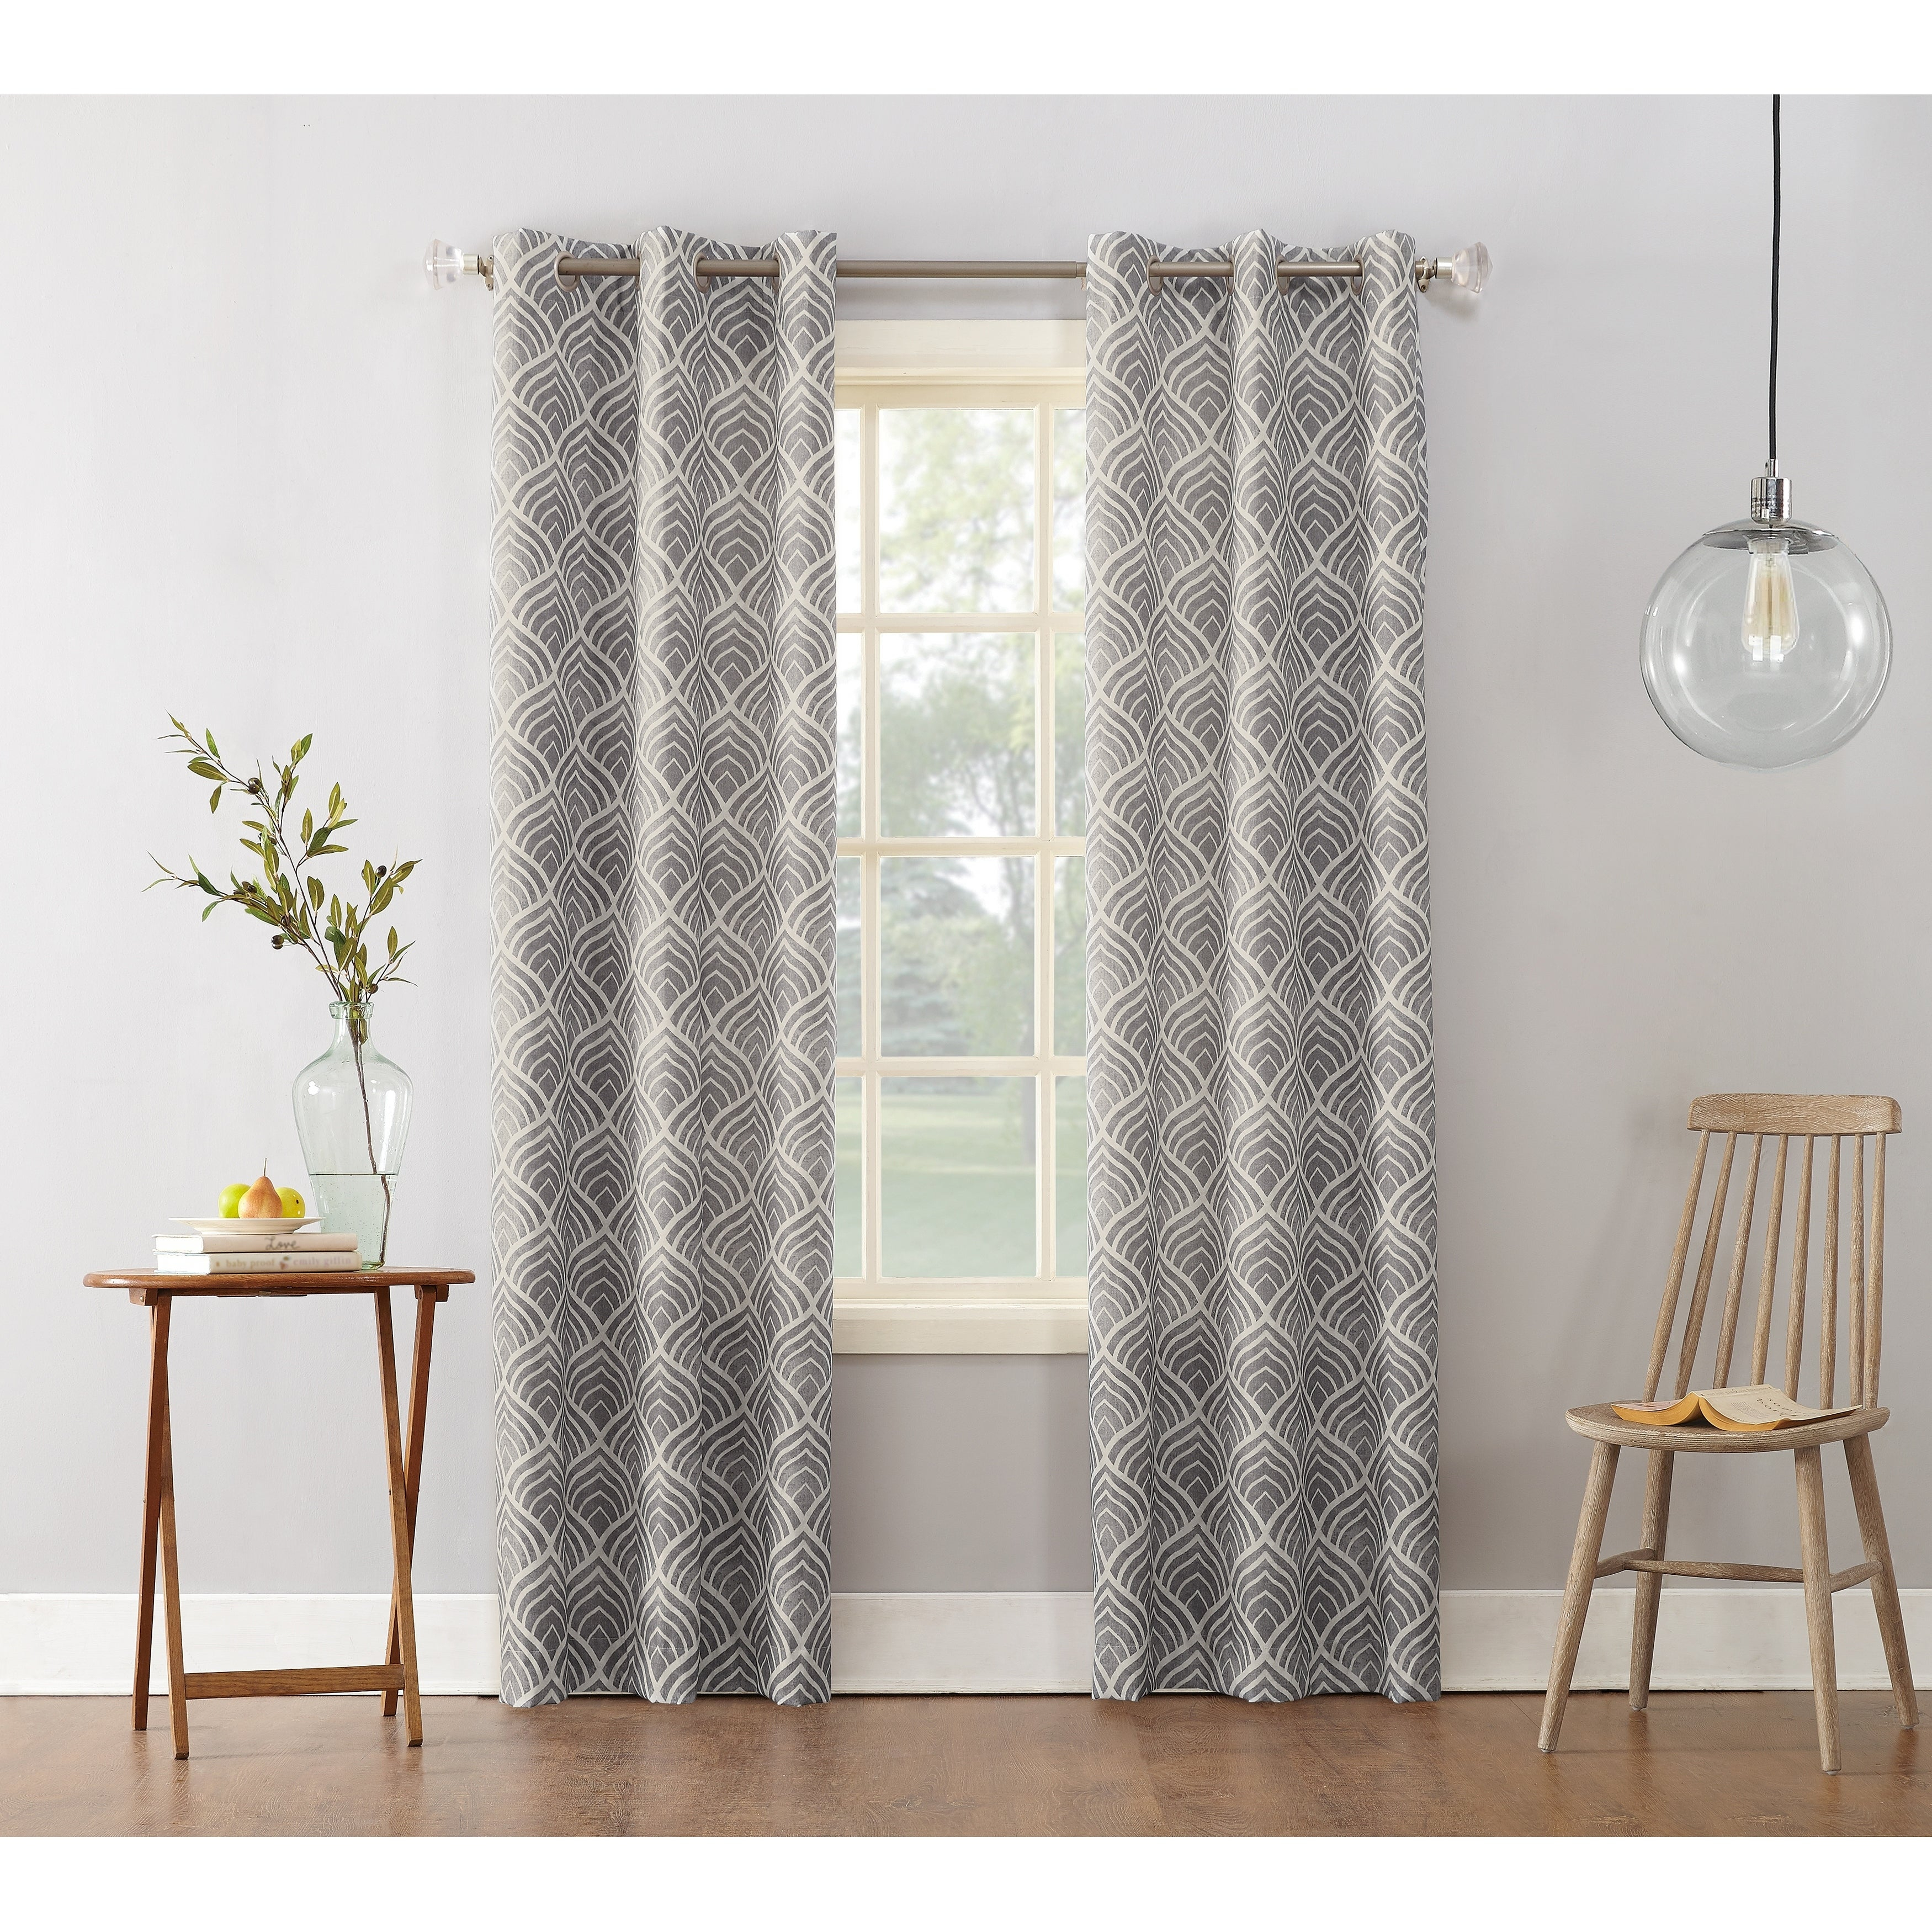 Sun Zero Clarke Geometric Print Textured Thermal Insulated Grommet Curtain Panel Regarding Geometric Print Textured Thermal Insulated Grommet Curtain Panels (View 2 of 20)